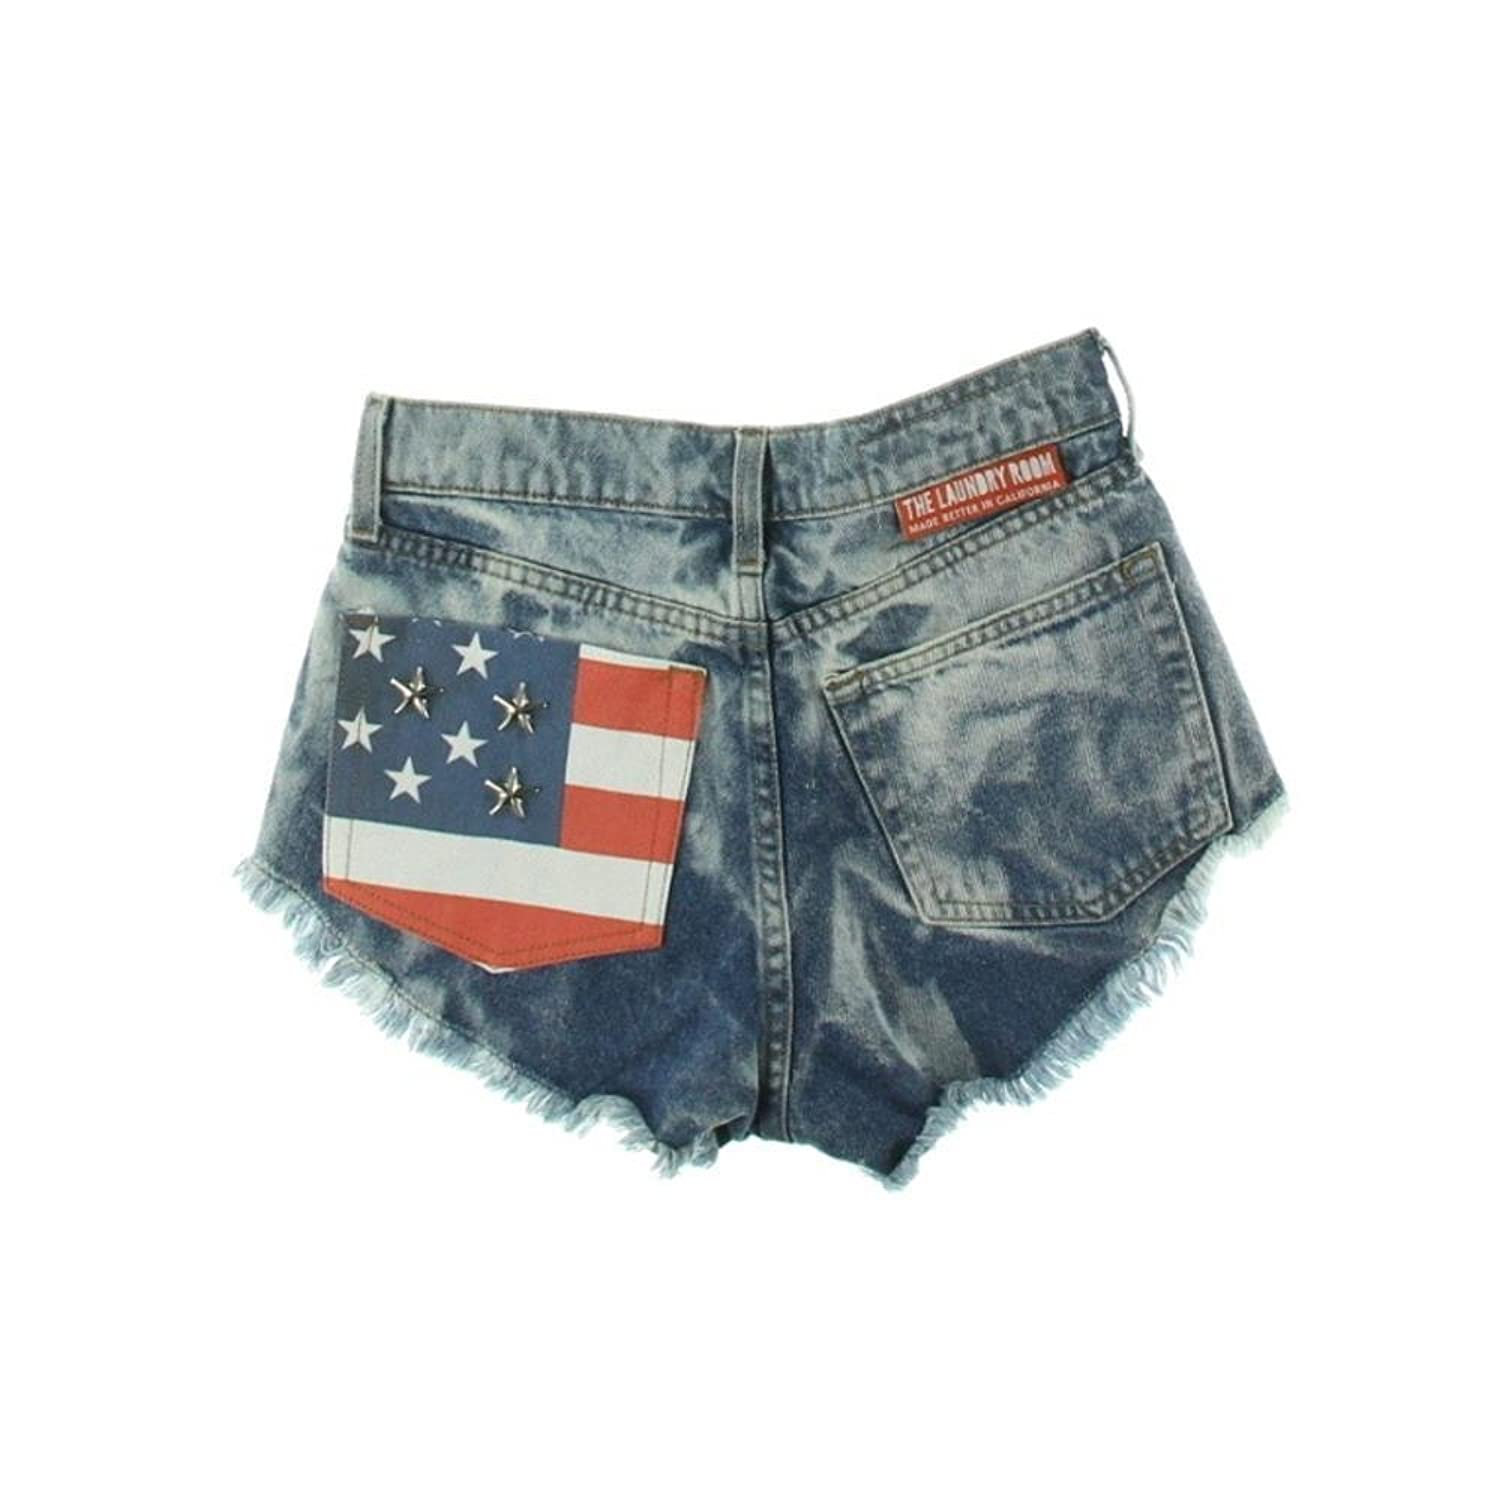 The Laundry Room American Flag Embellished Destroyed Cutoff Denim Shorts Size 27